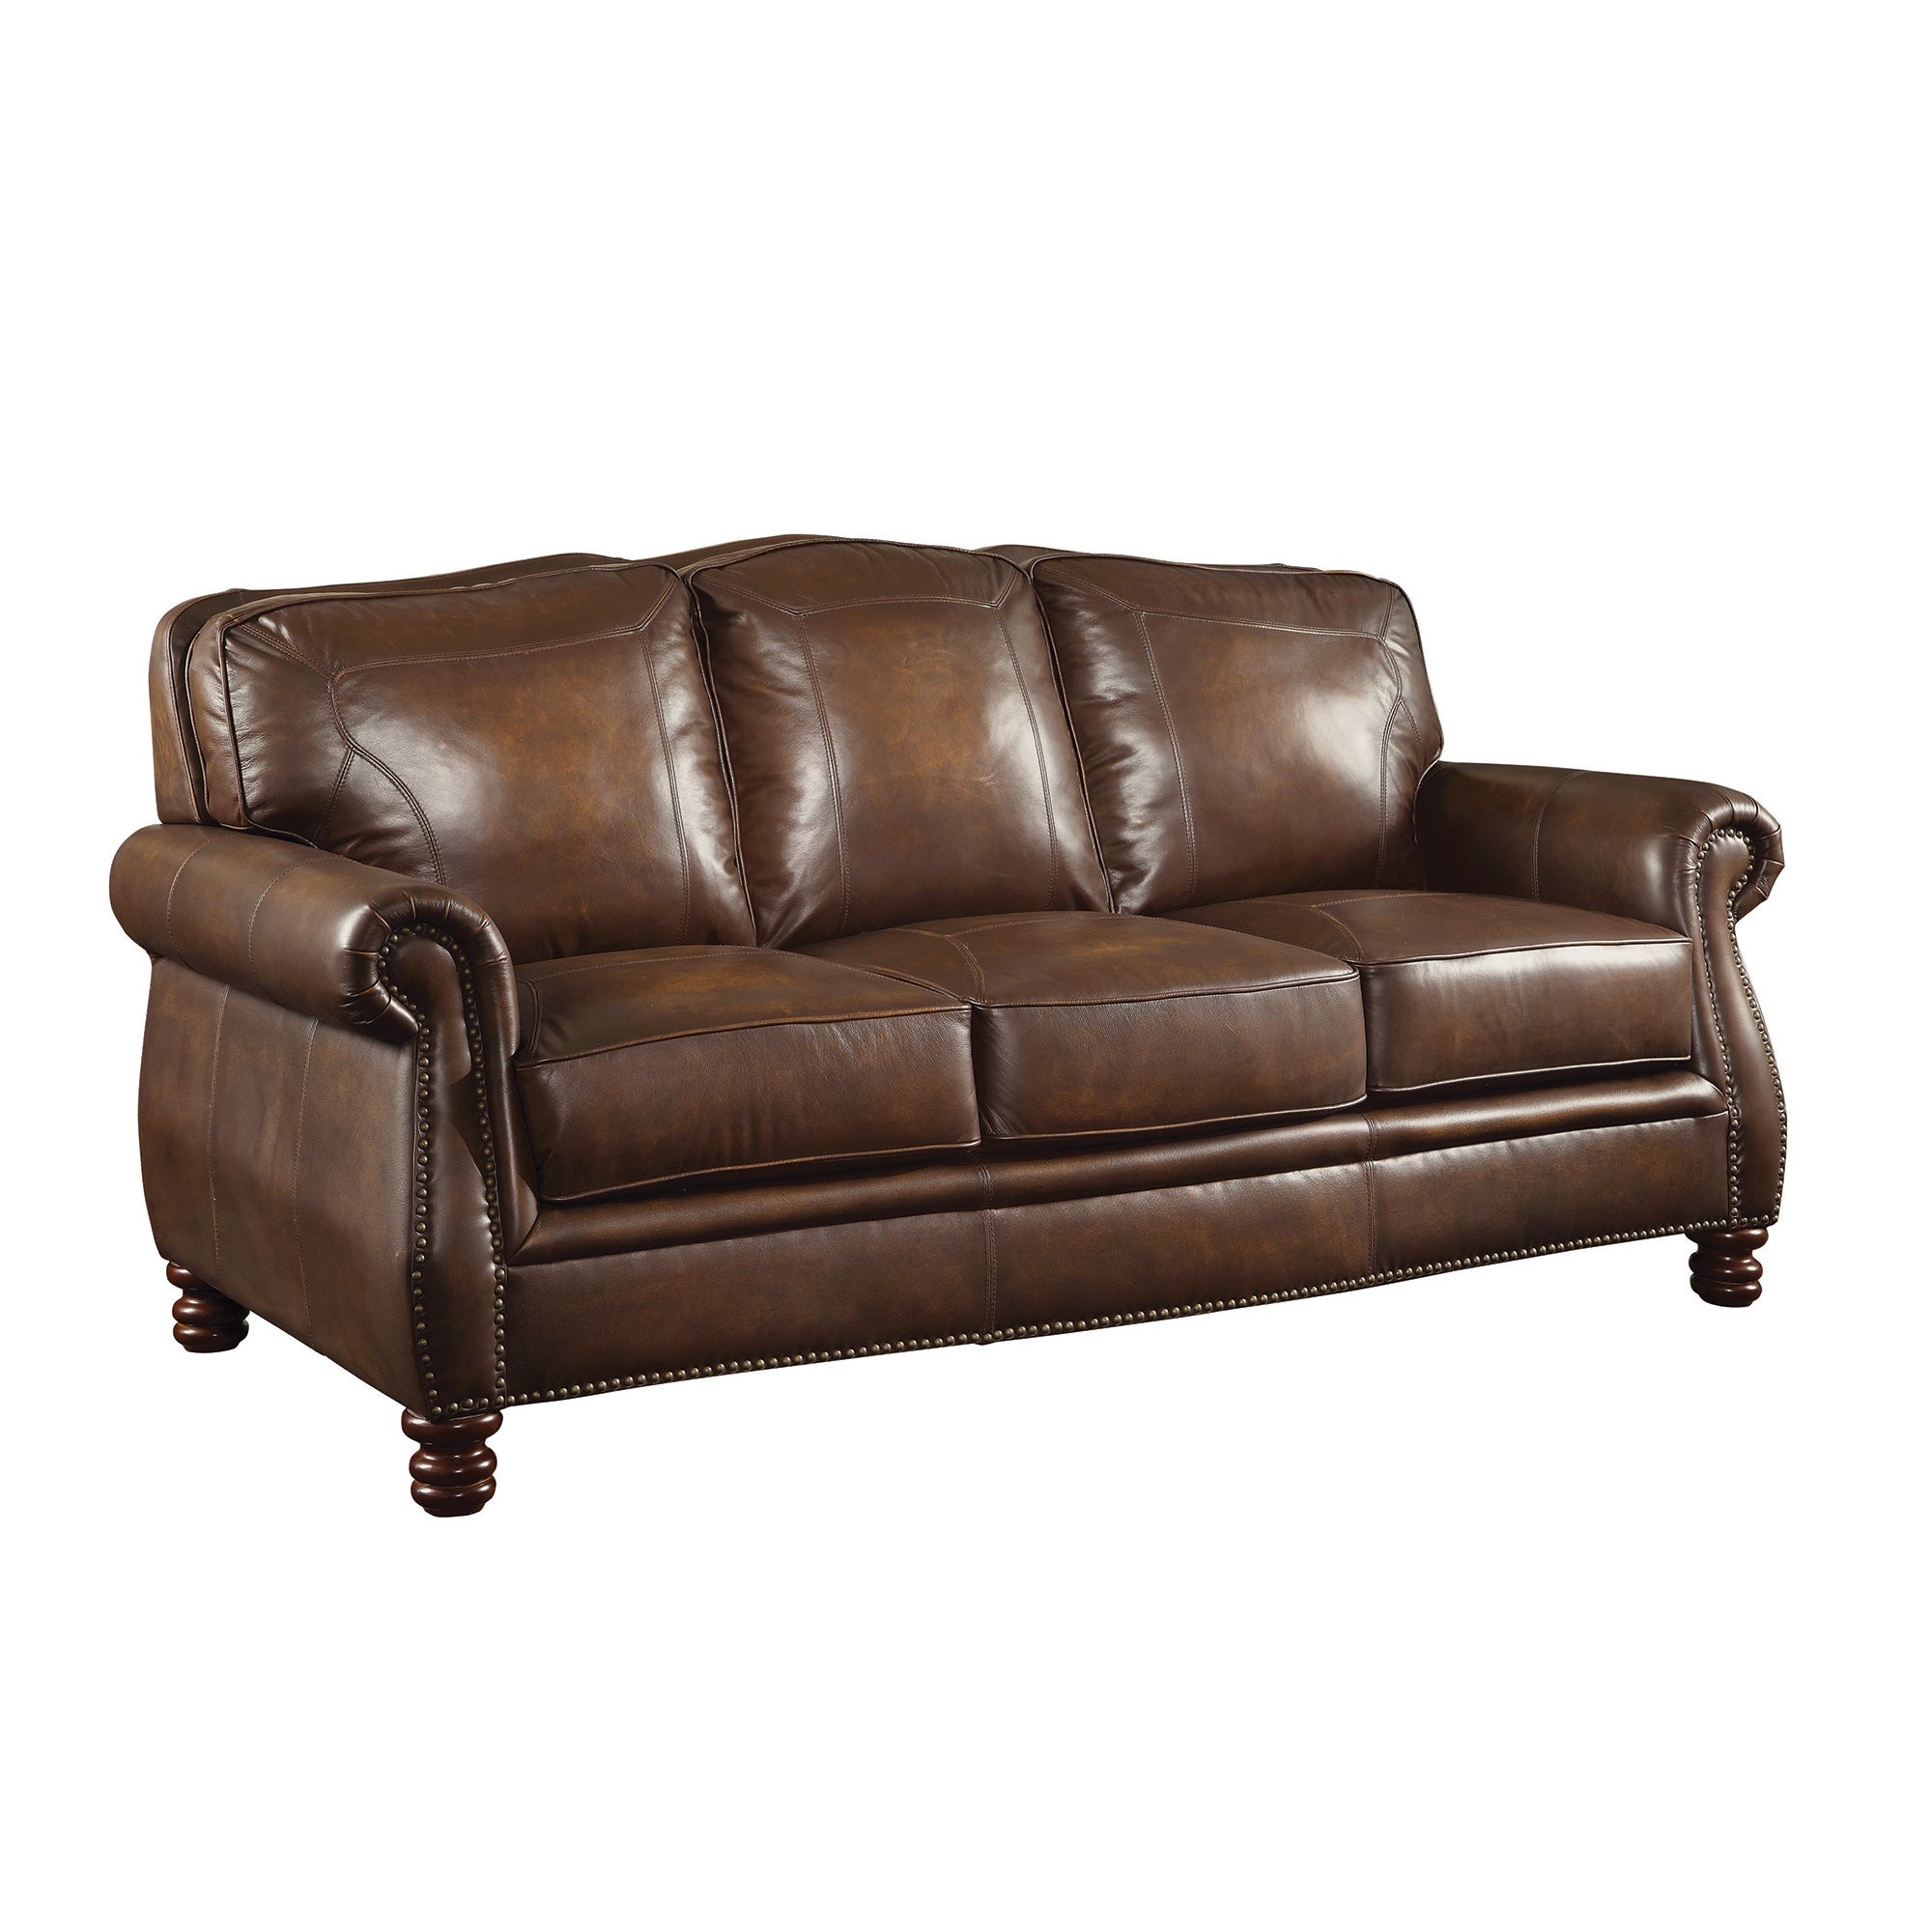 Shop Coaster Company Nailhead Trim Brown Leather Sofa   Free Shipping Today    Overstock.com   12189797